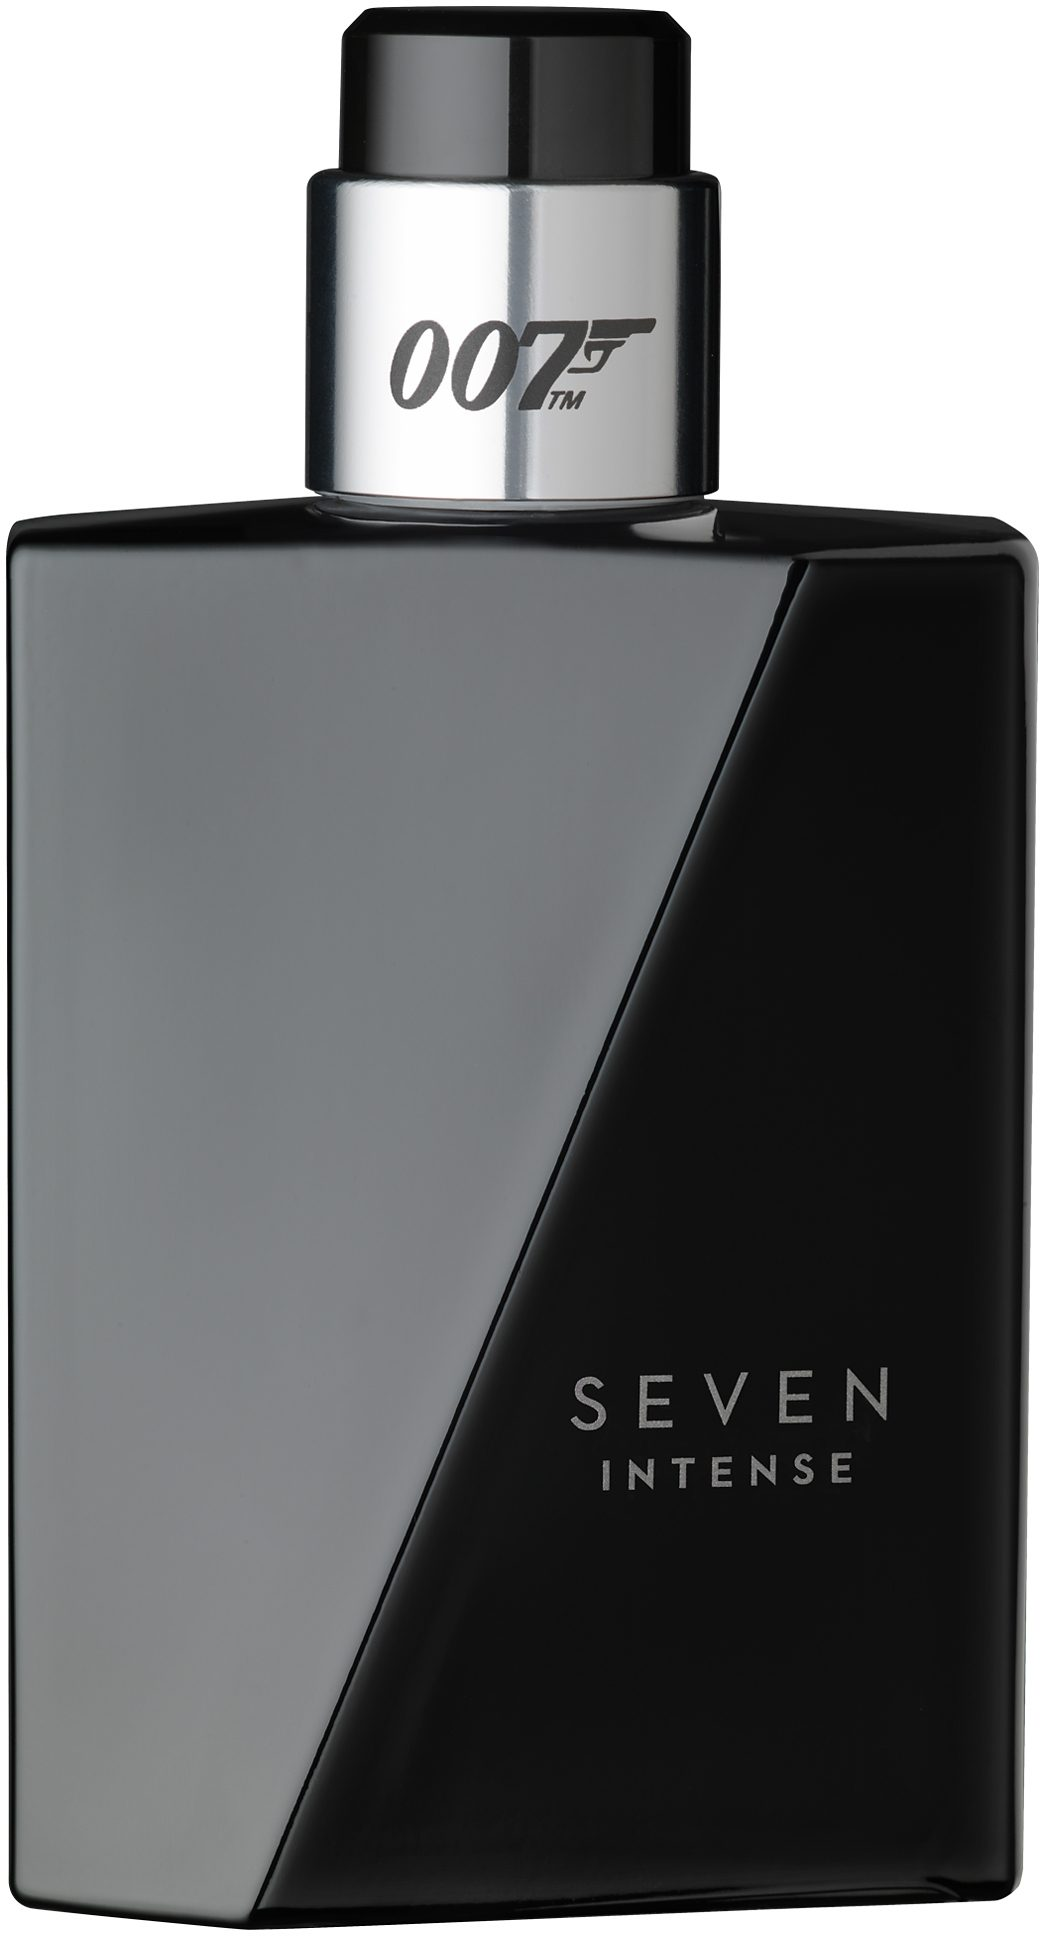 James Bond 007, »Seven Intense«, Eau de Parfum